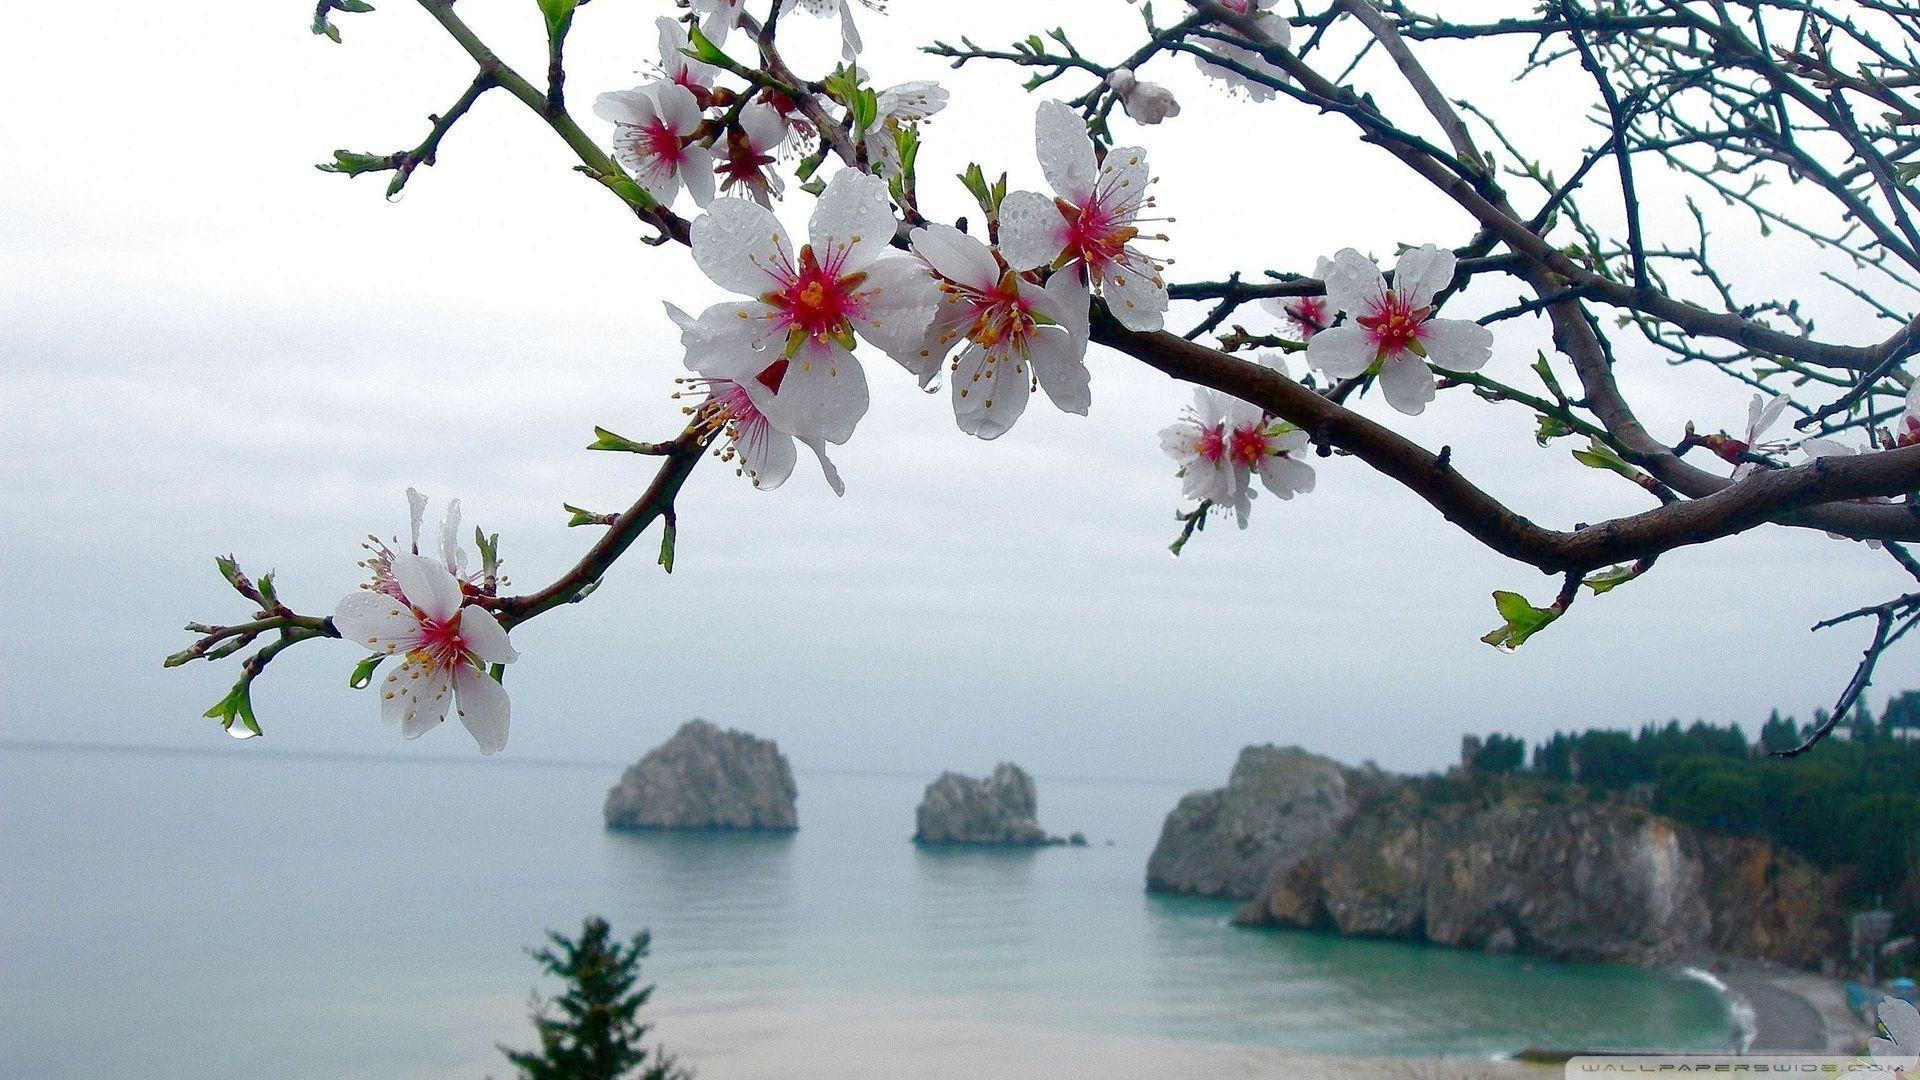 Spring Wallpapers 1920x1080 - Wallpaper Cave